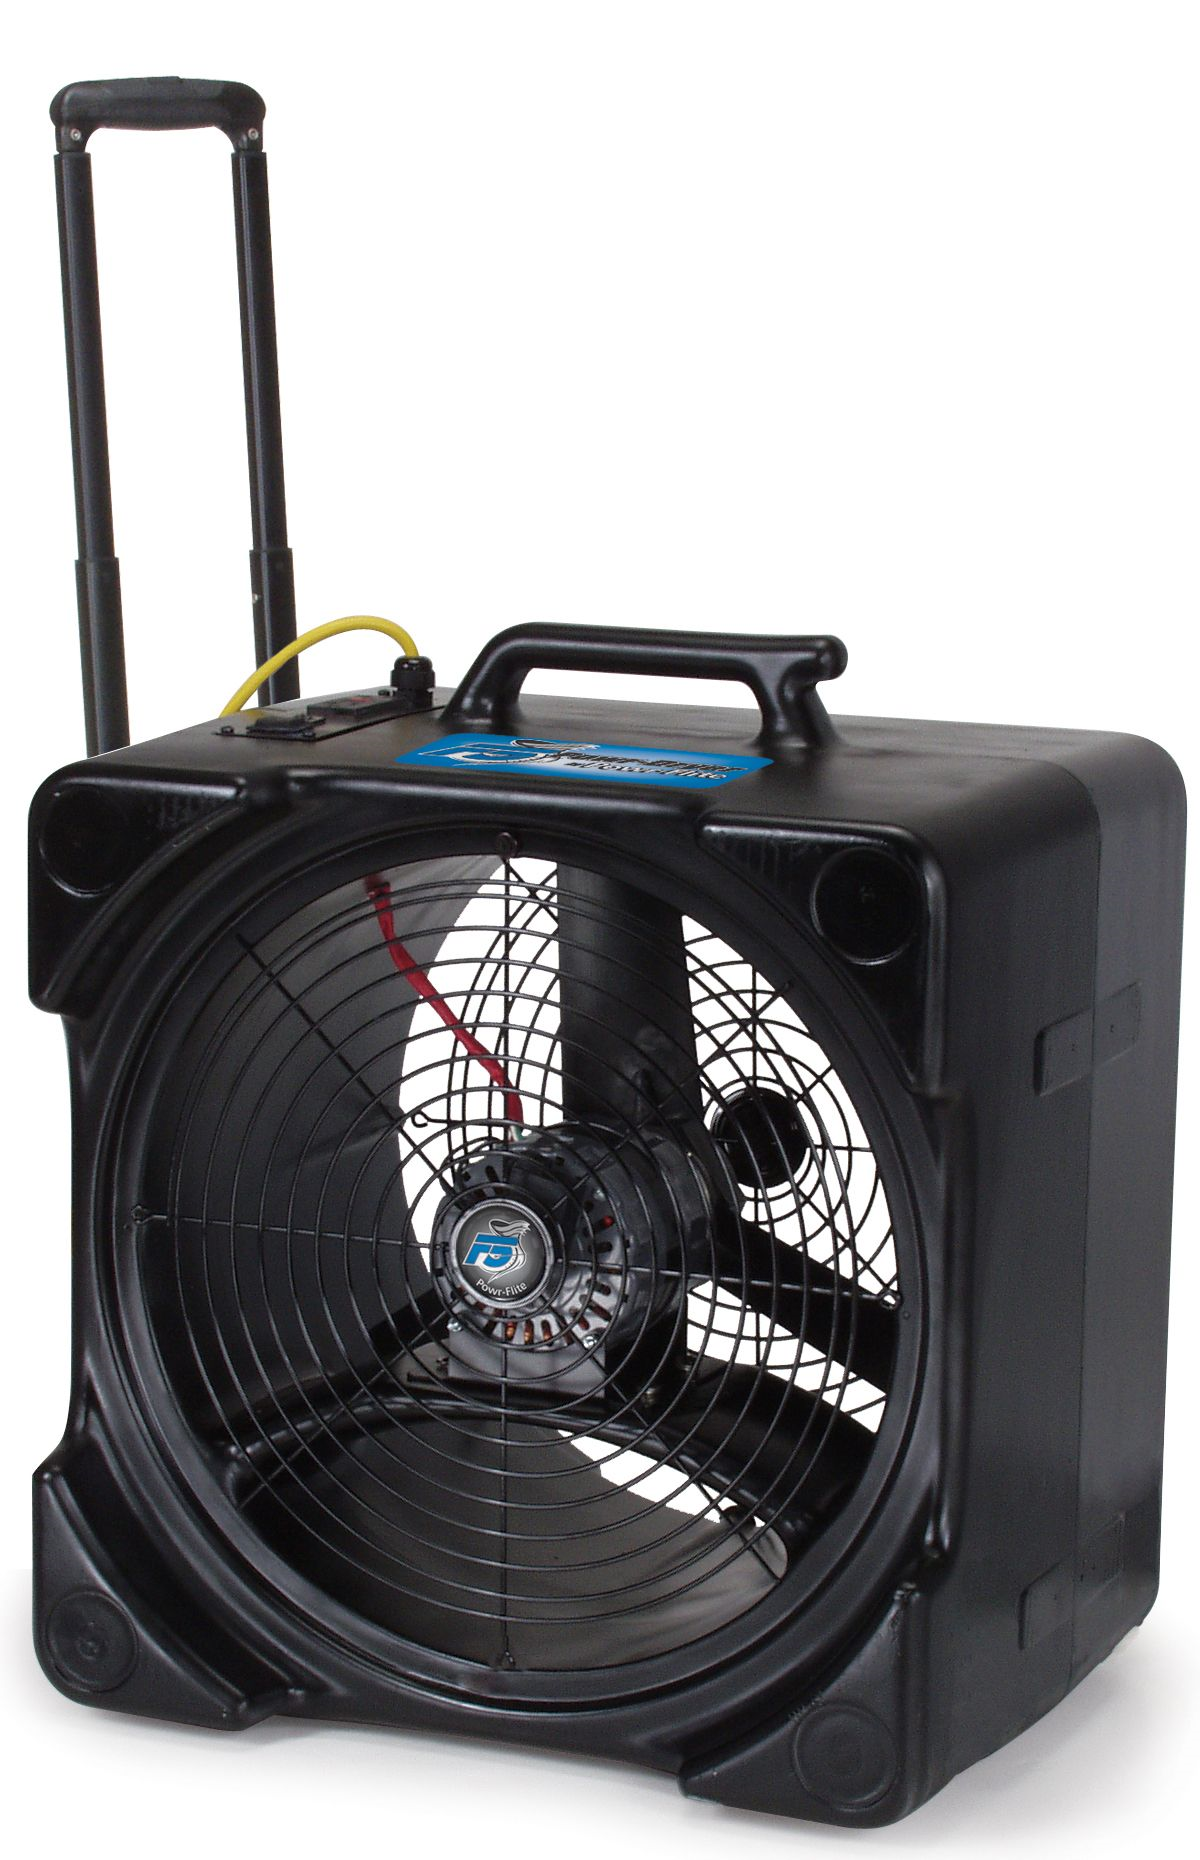 Pdf5dx Powr Flite Axial Fan Air Mover With Handle And